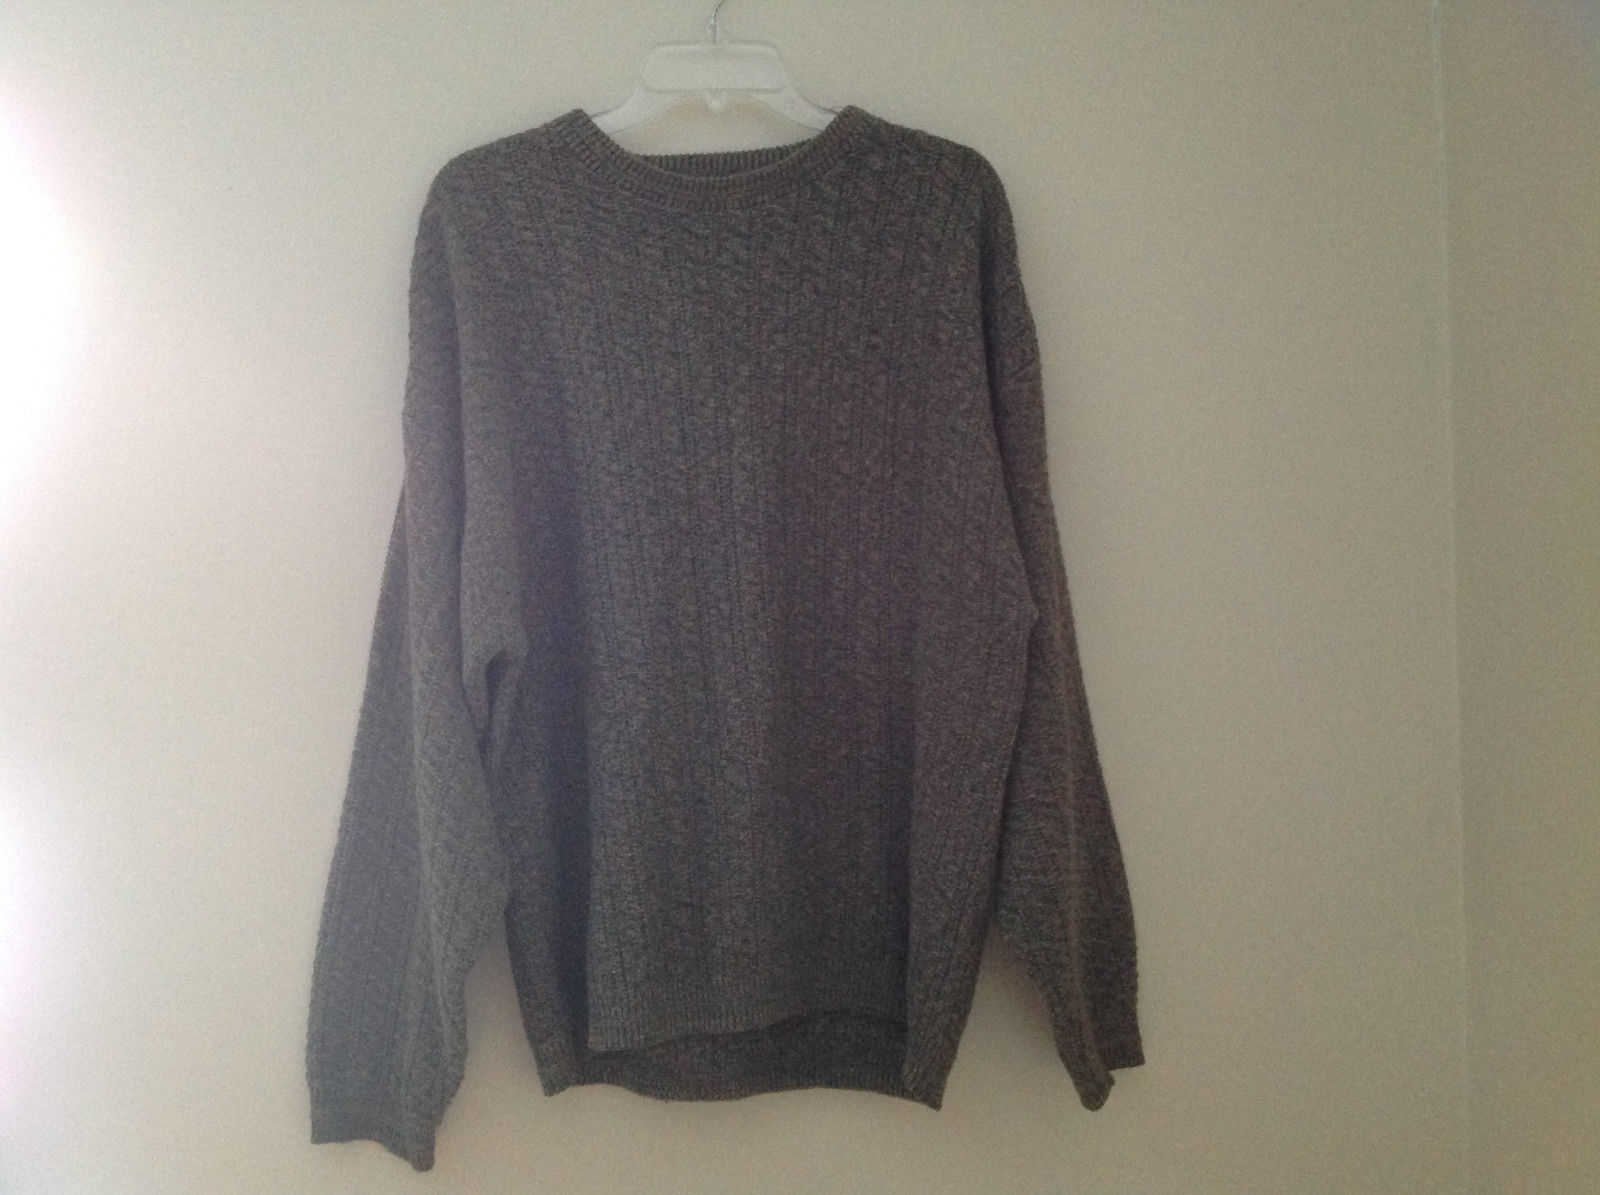 Bill Blass Olive Green Cable Knit Crew Neck Sweater Size Large